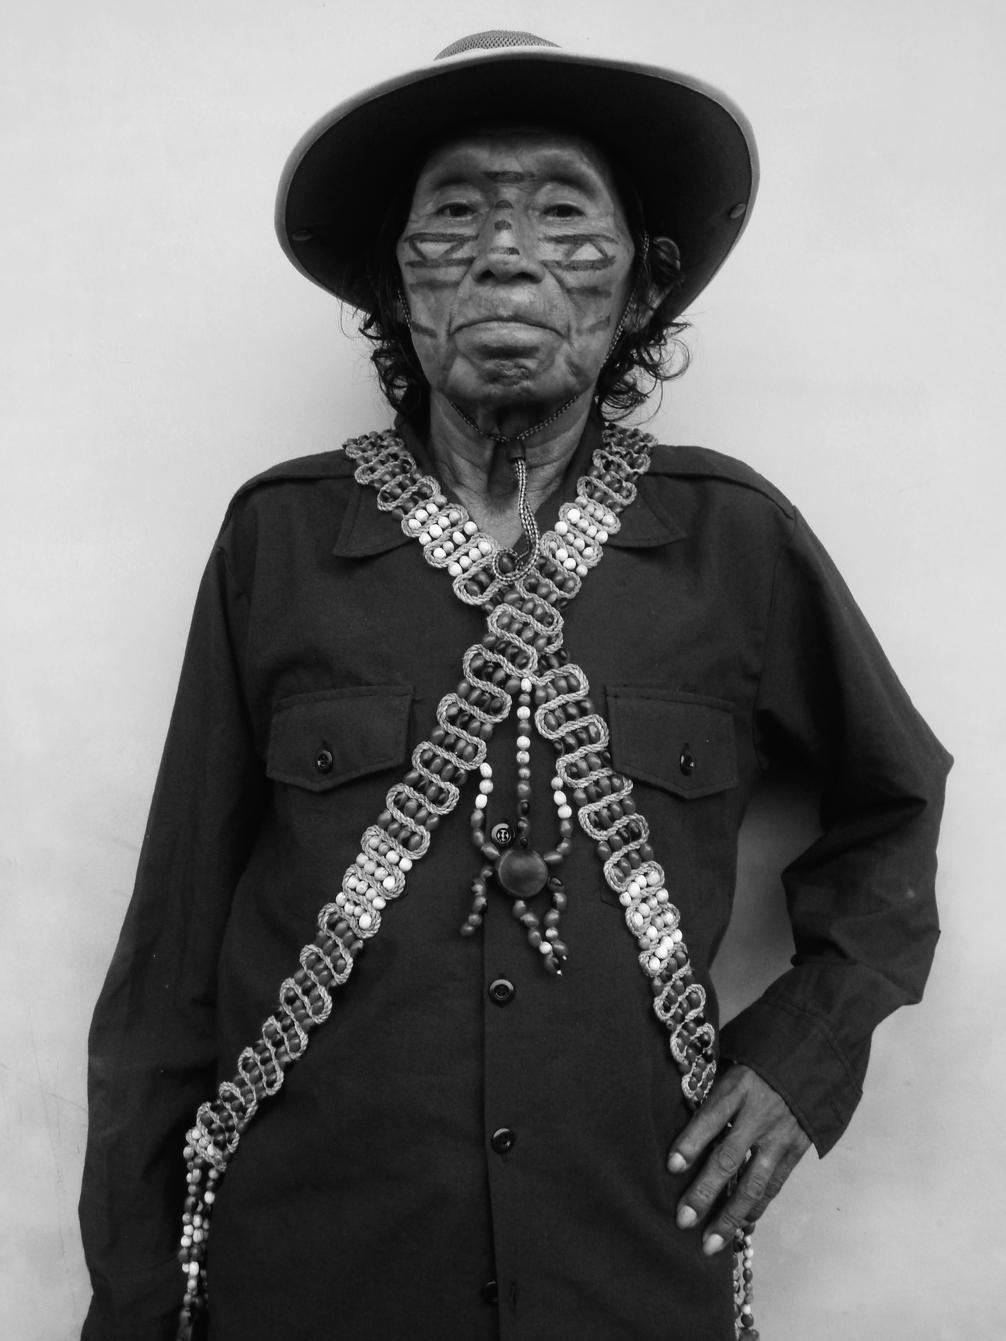 Black and White Photo of Ramon The Shaman